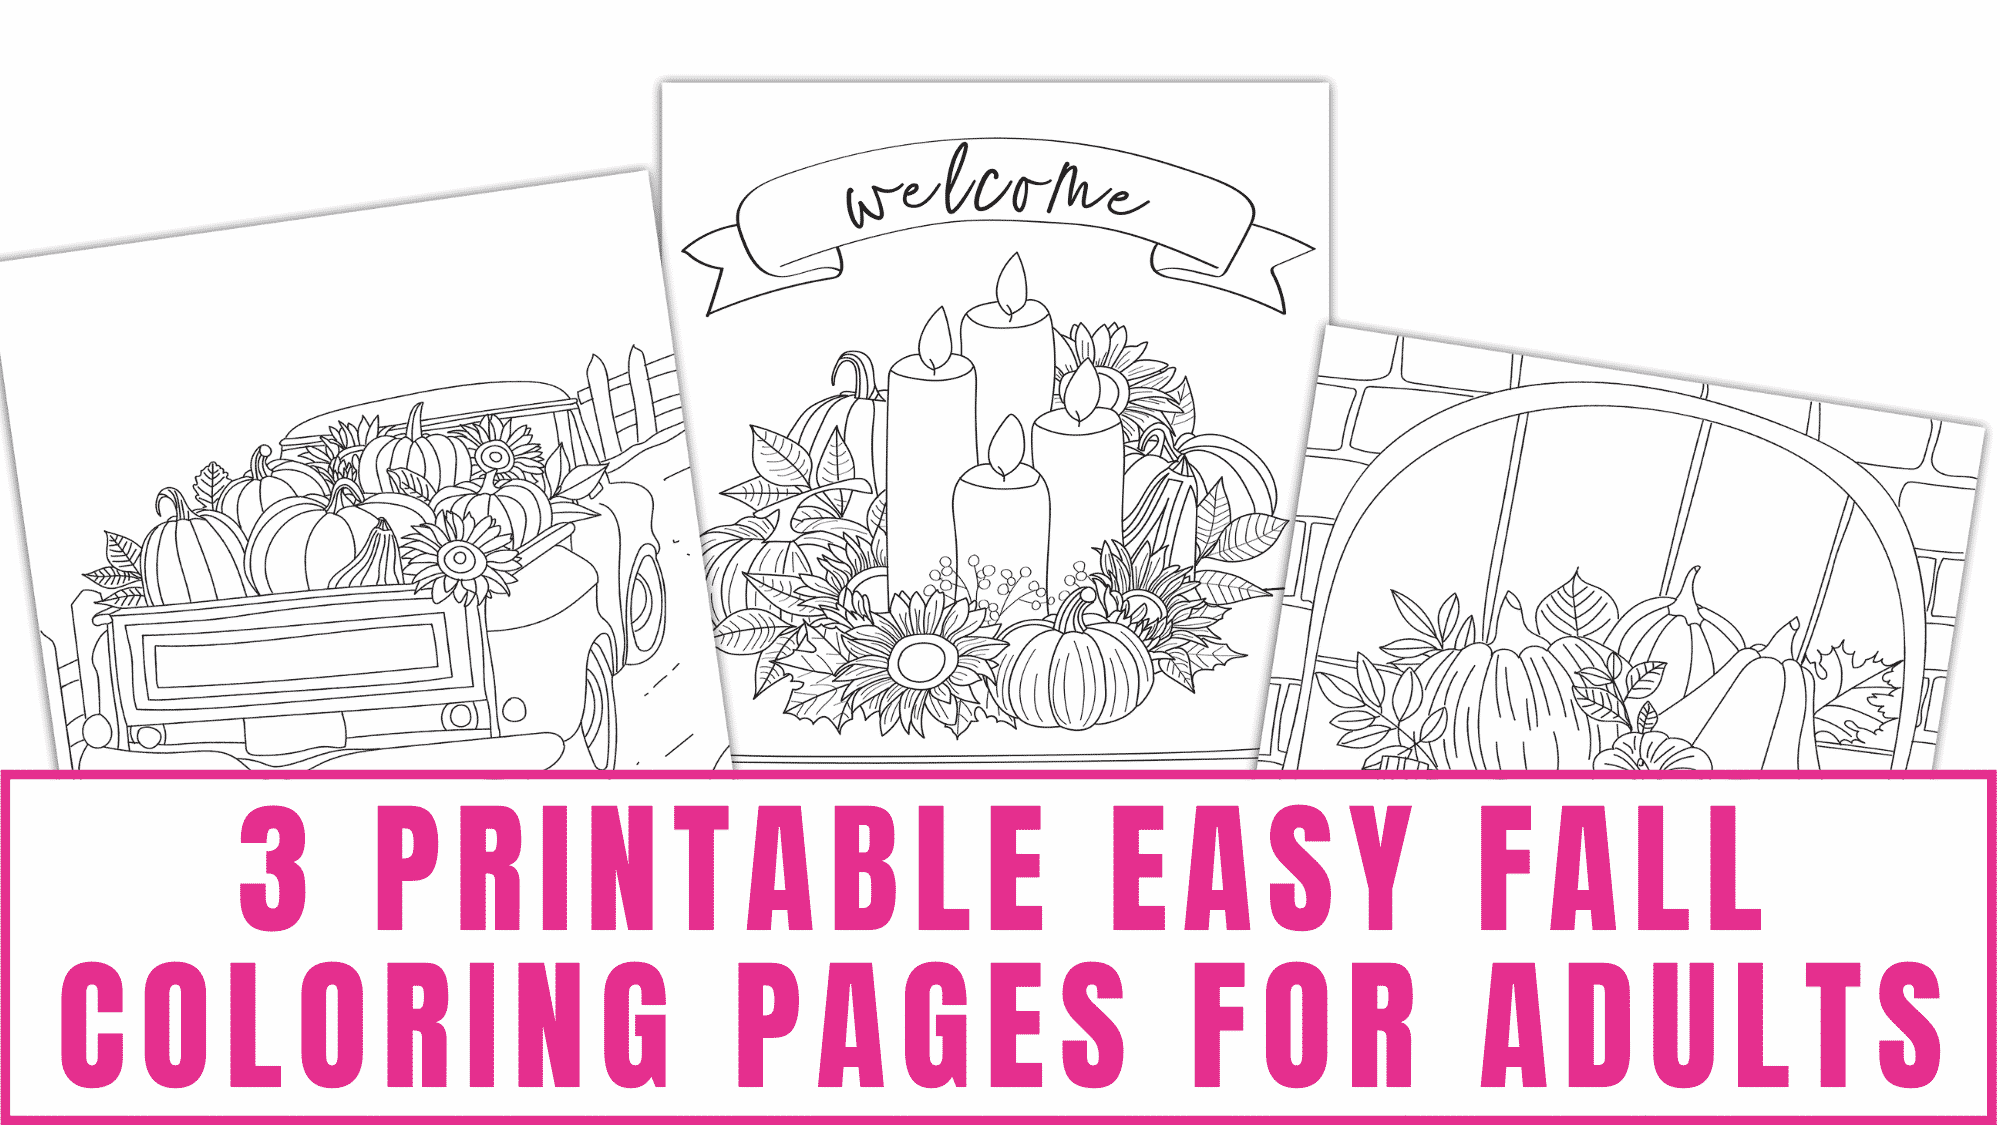 These printable easy fall coloring pages for adults are a fun and relaxing fall activity. Kids will also enjoy these fall coloring pages as well.